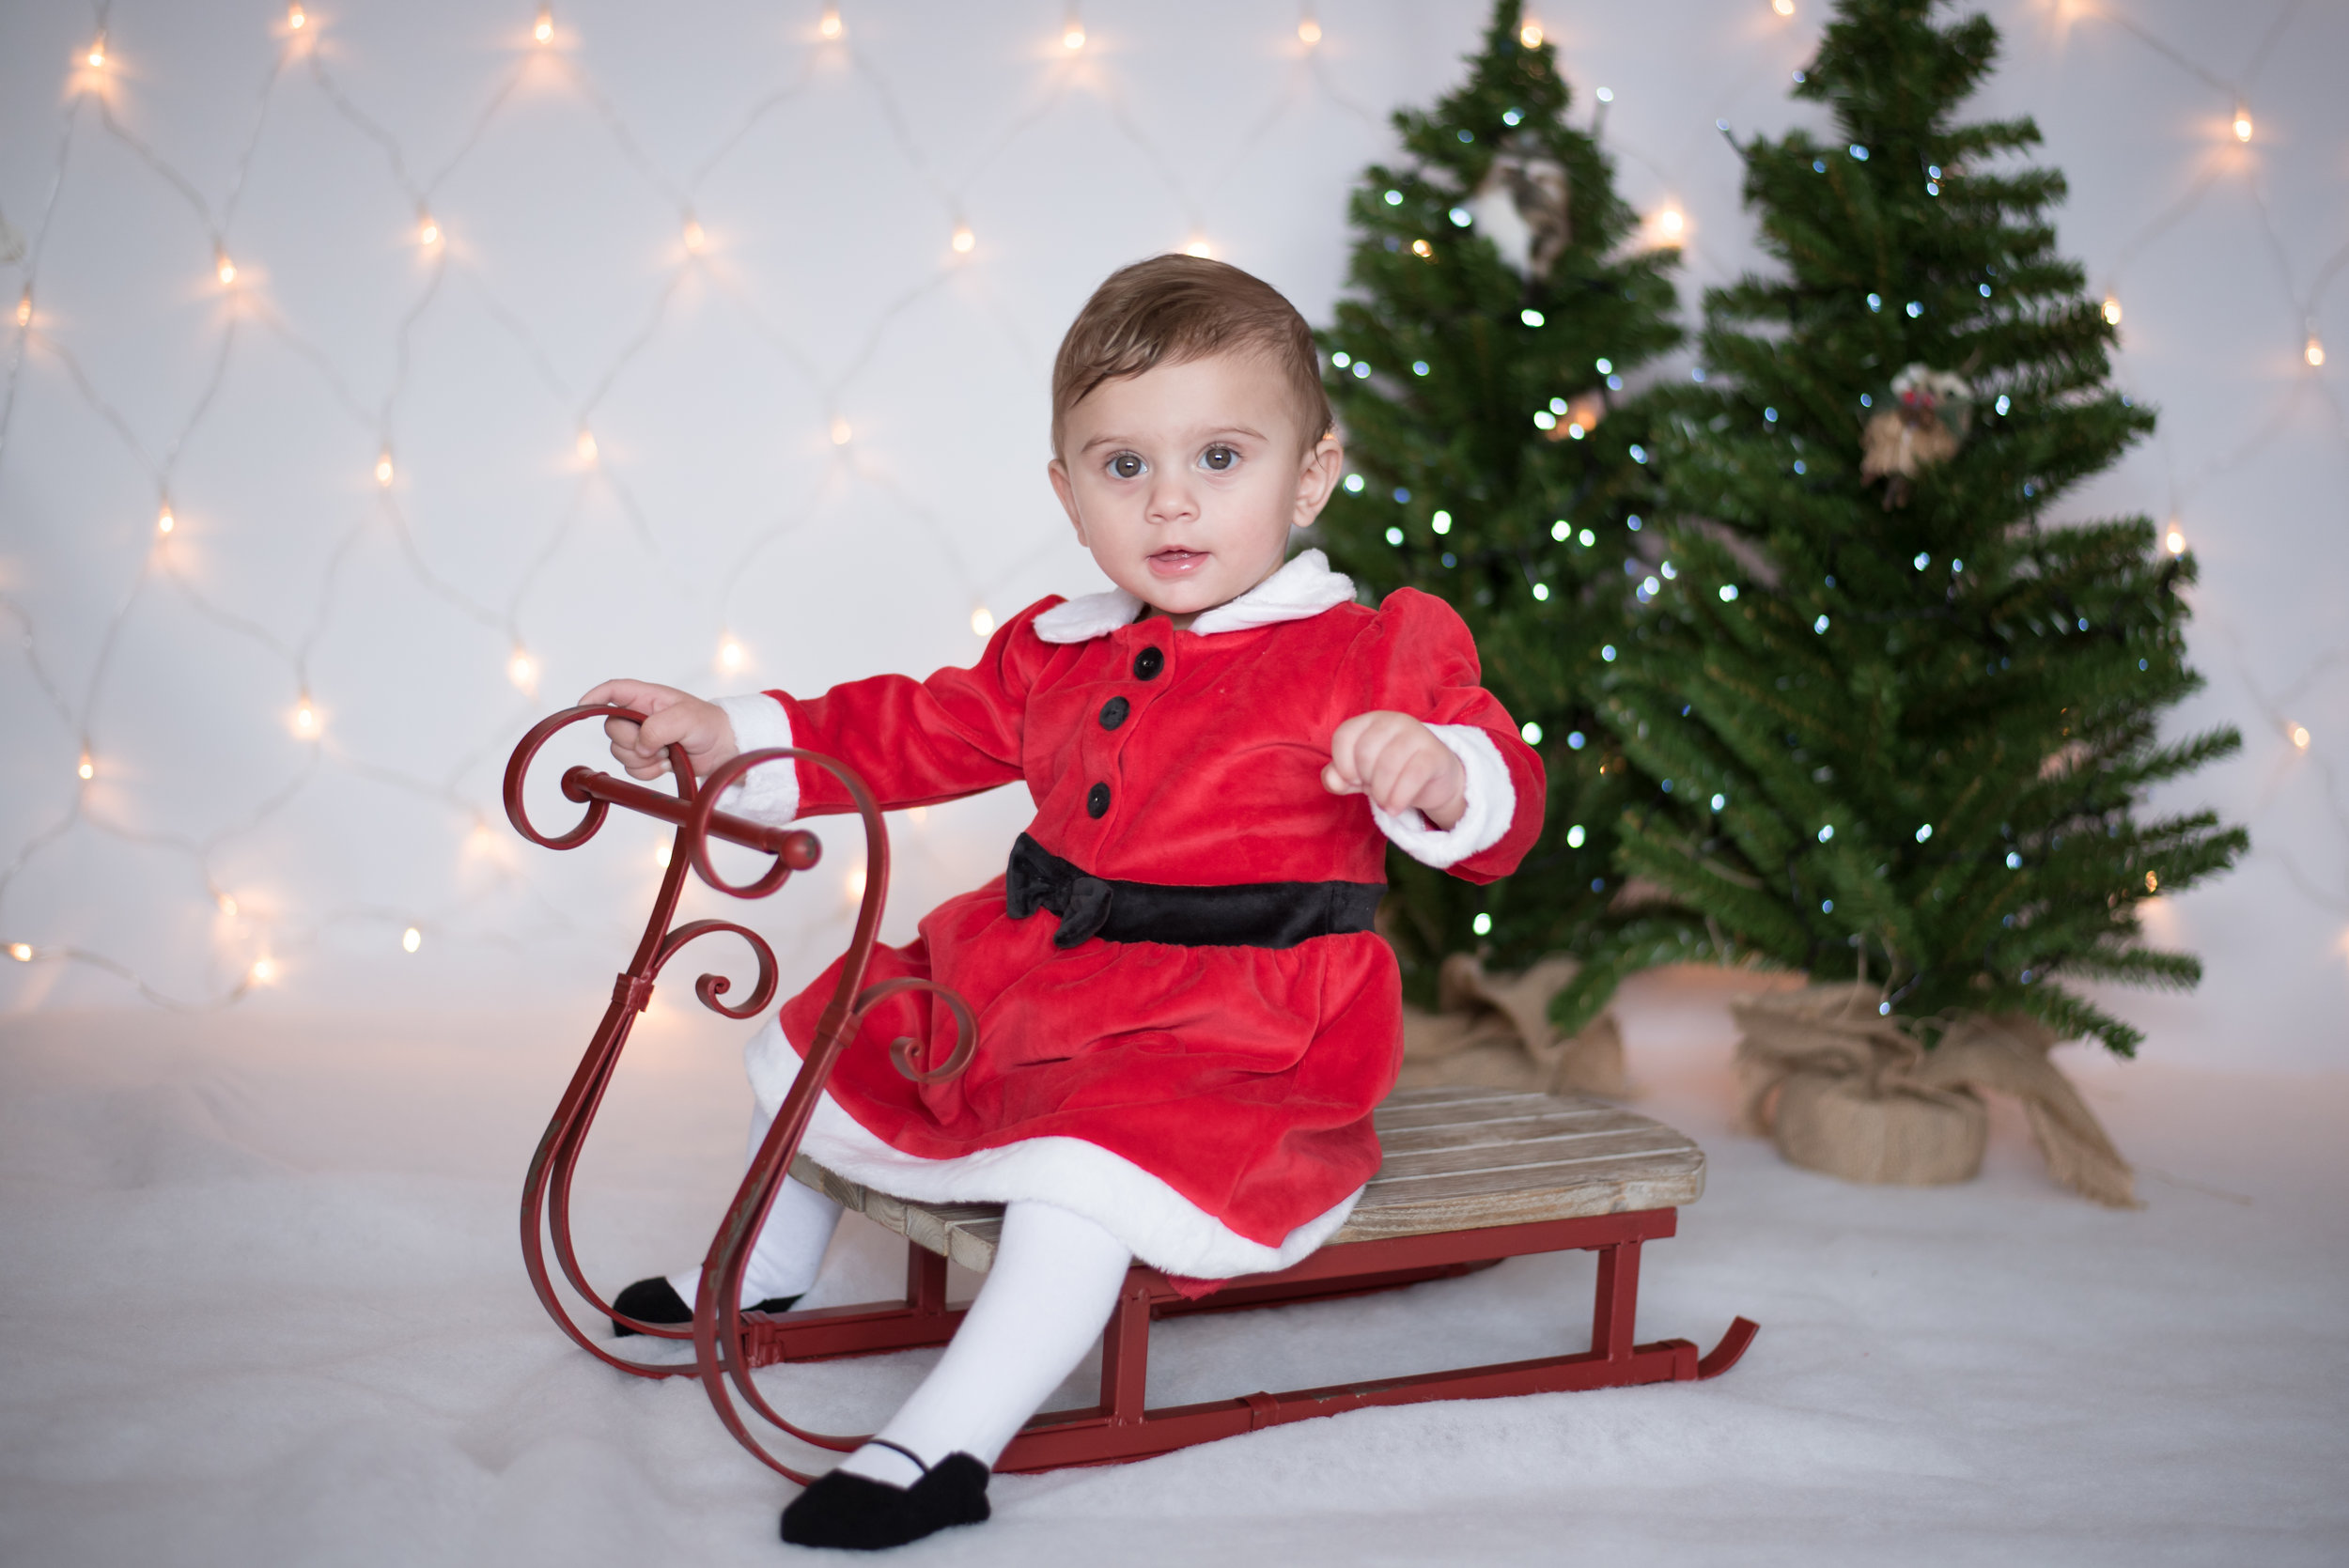 Christmas mini shoot